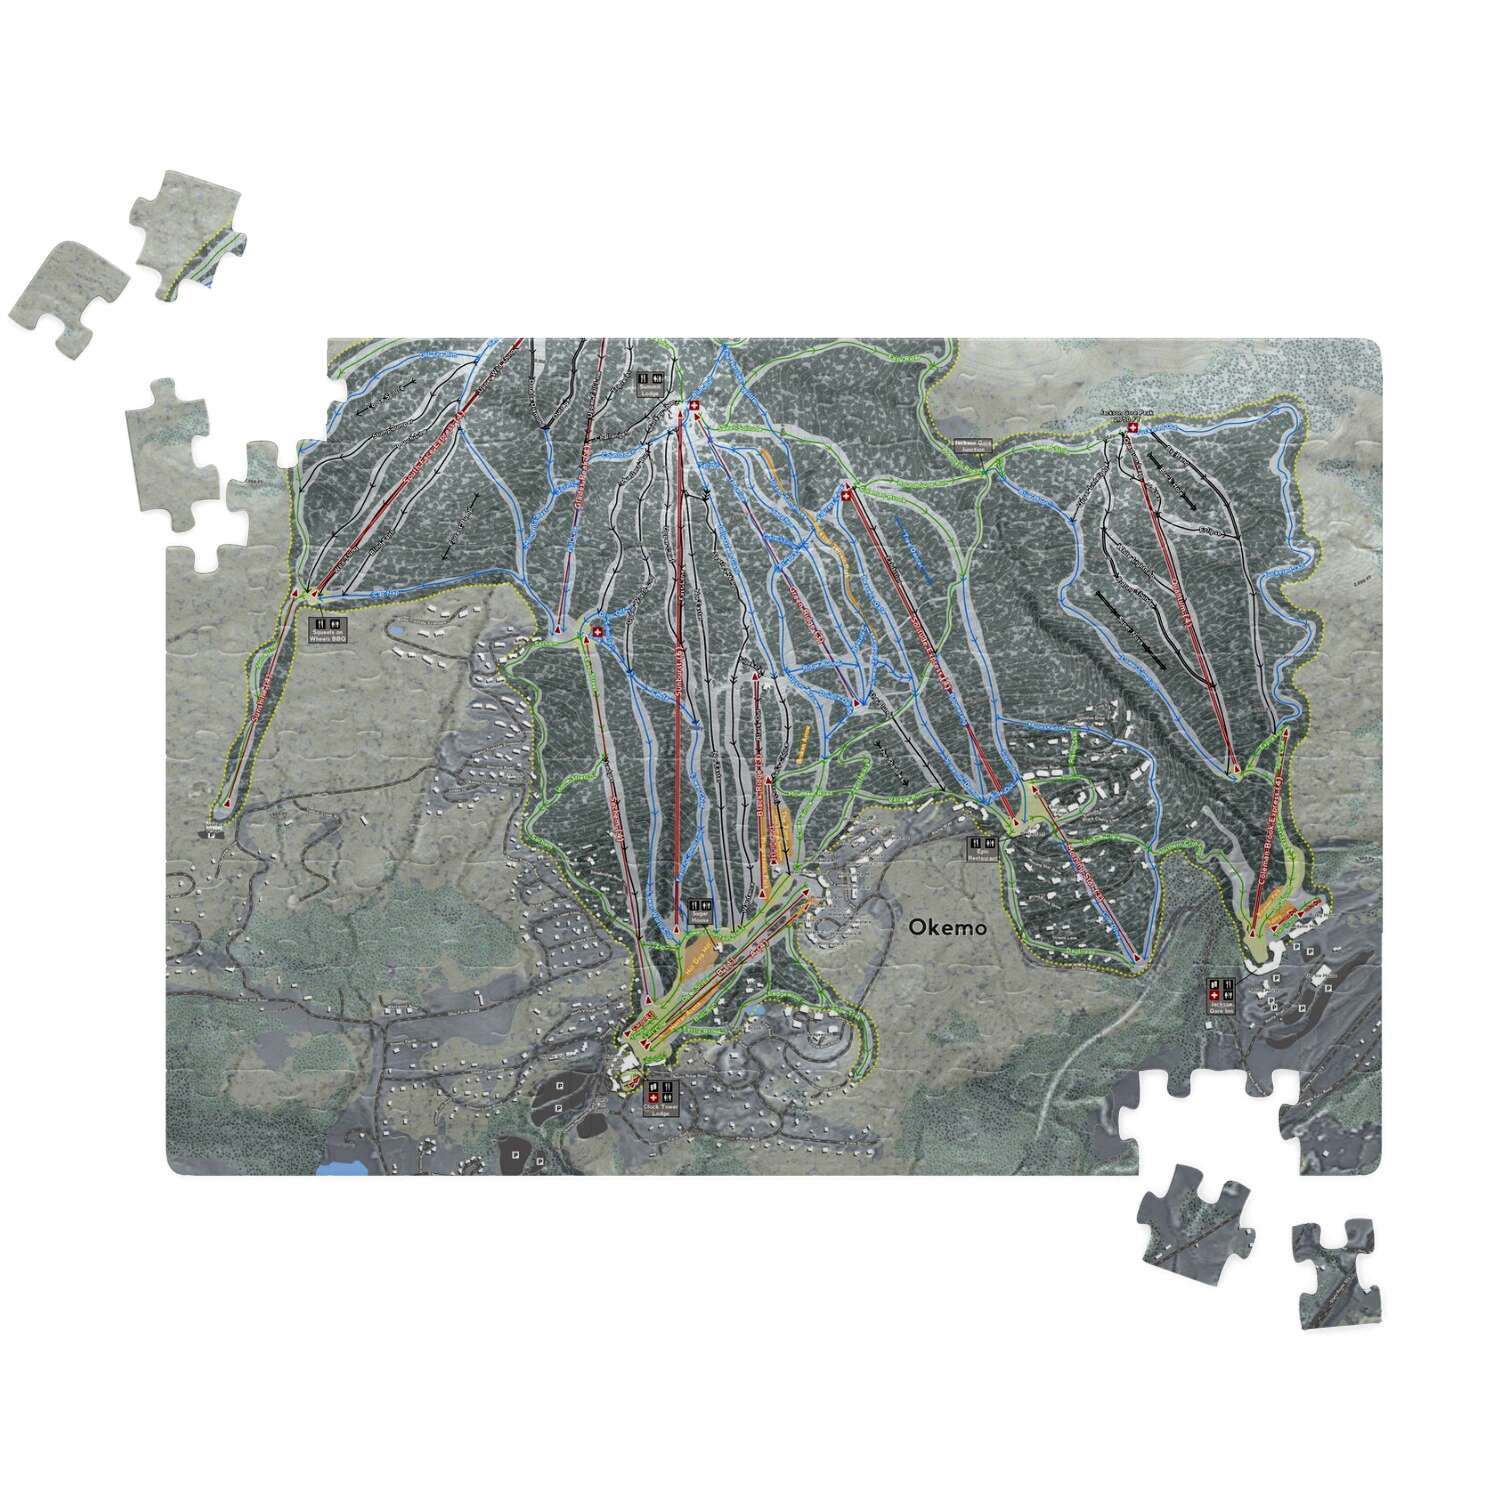 Okemo Vermont Ski Resort Map Puzzle